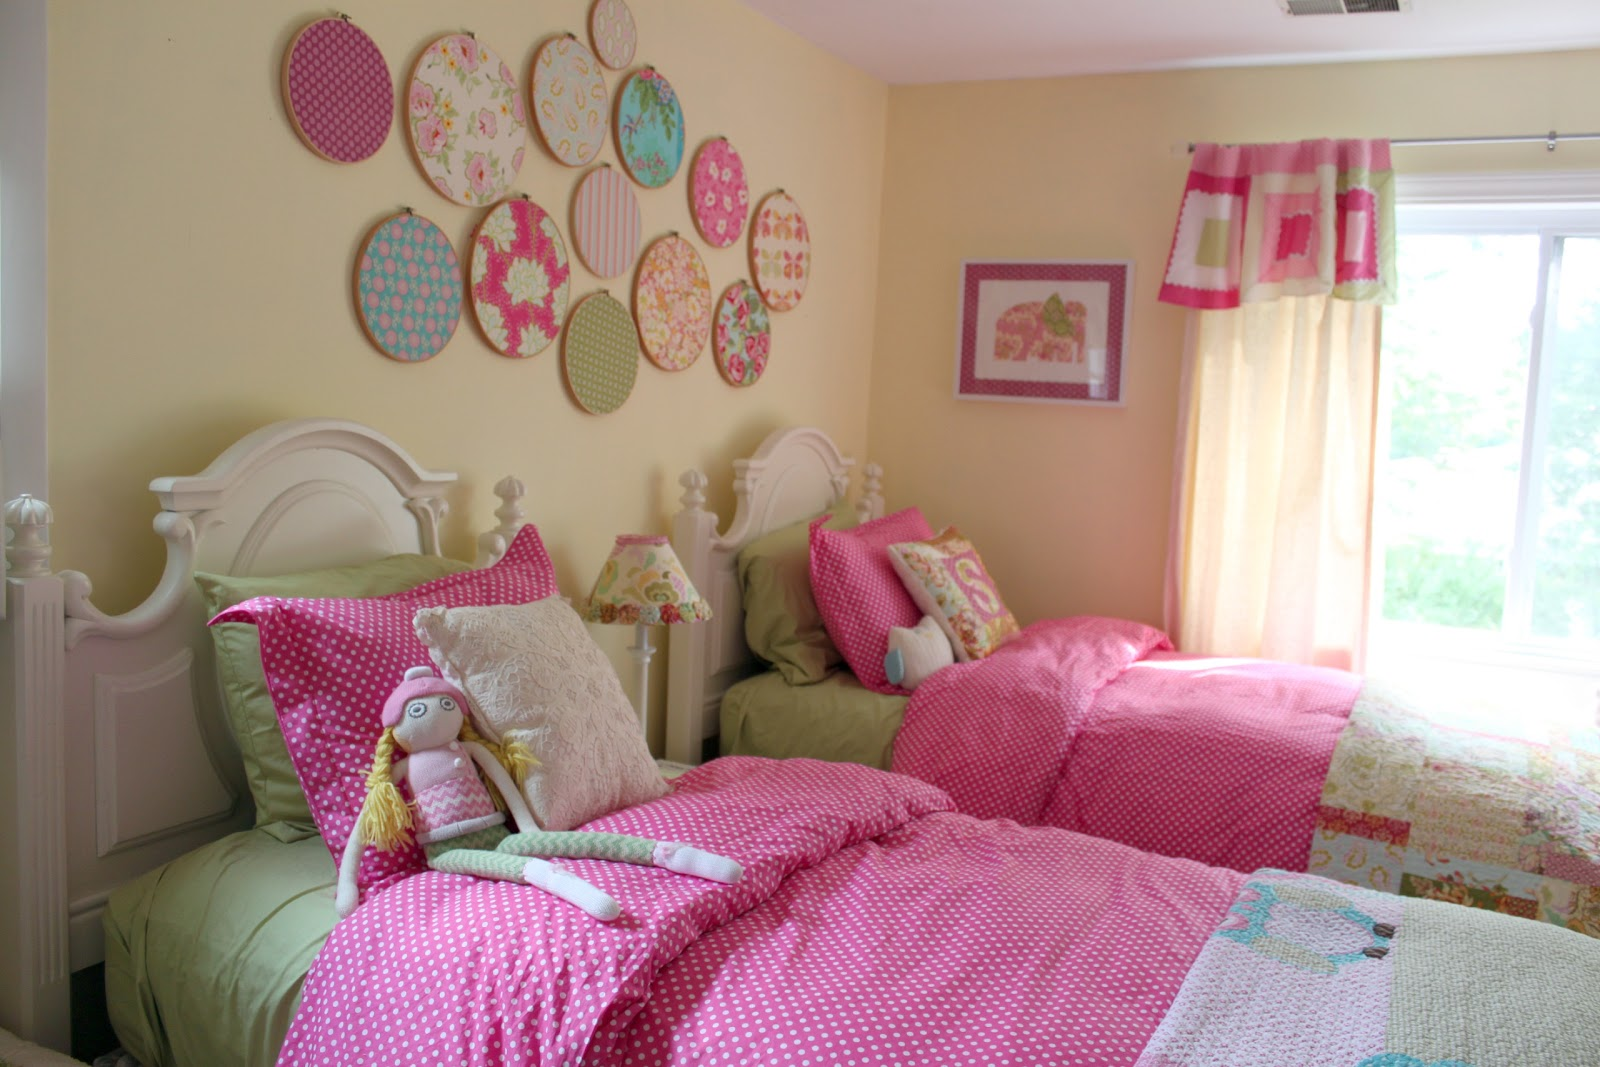 Decorating girls shared toddler bedroom the cottage mama for A girl room decoration